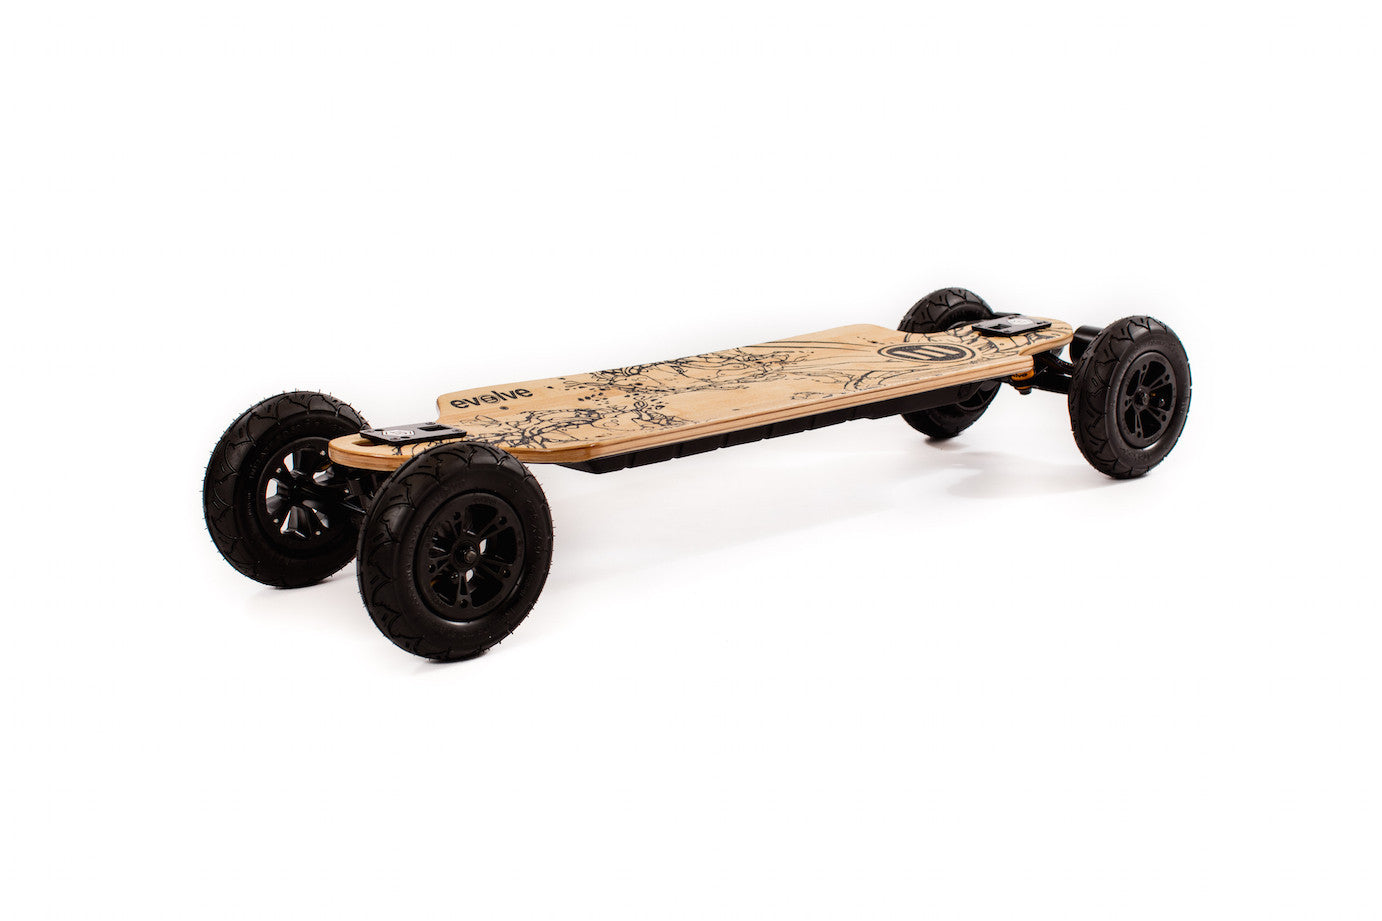 evolve bamboo gt 2 in 1 electric skateboard street and. Black Bedroom Furniture Sets. Home Design Ideas